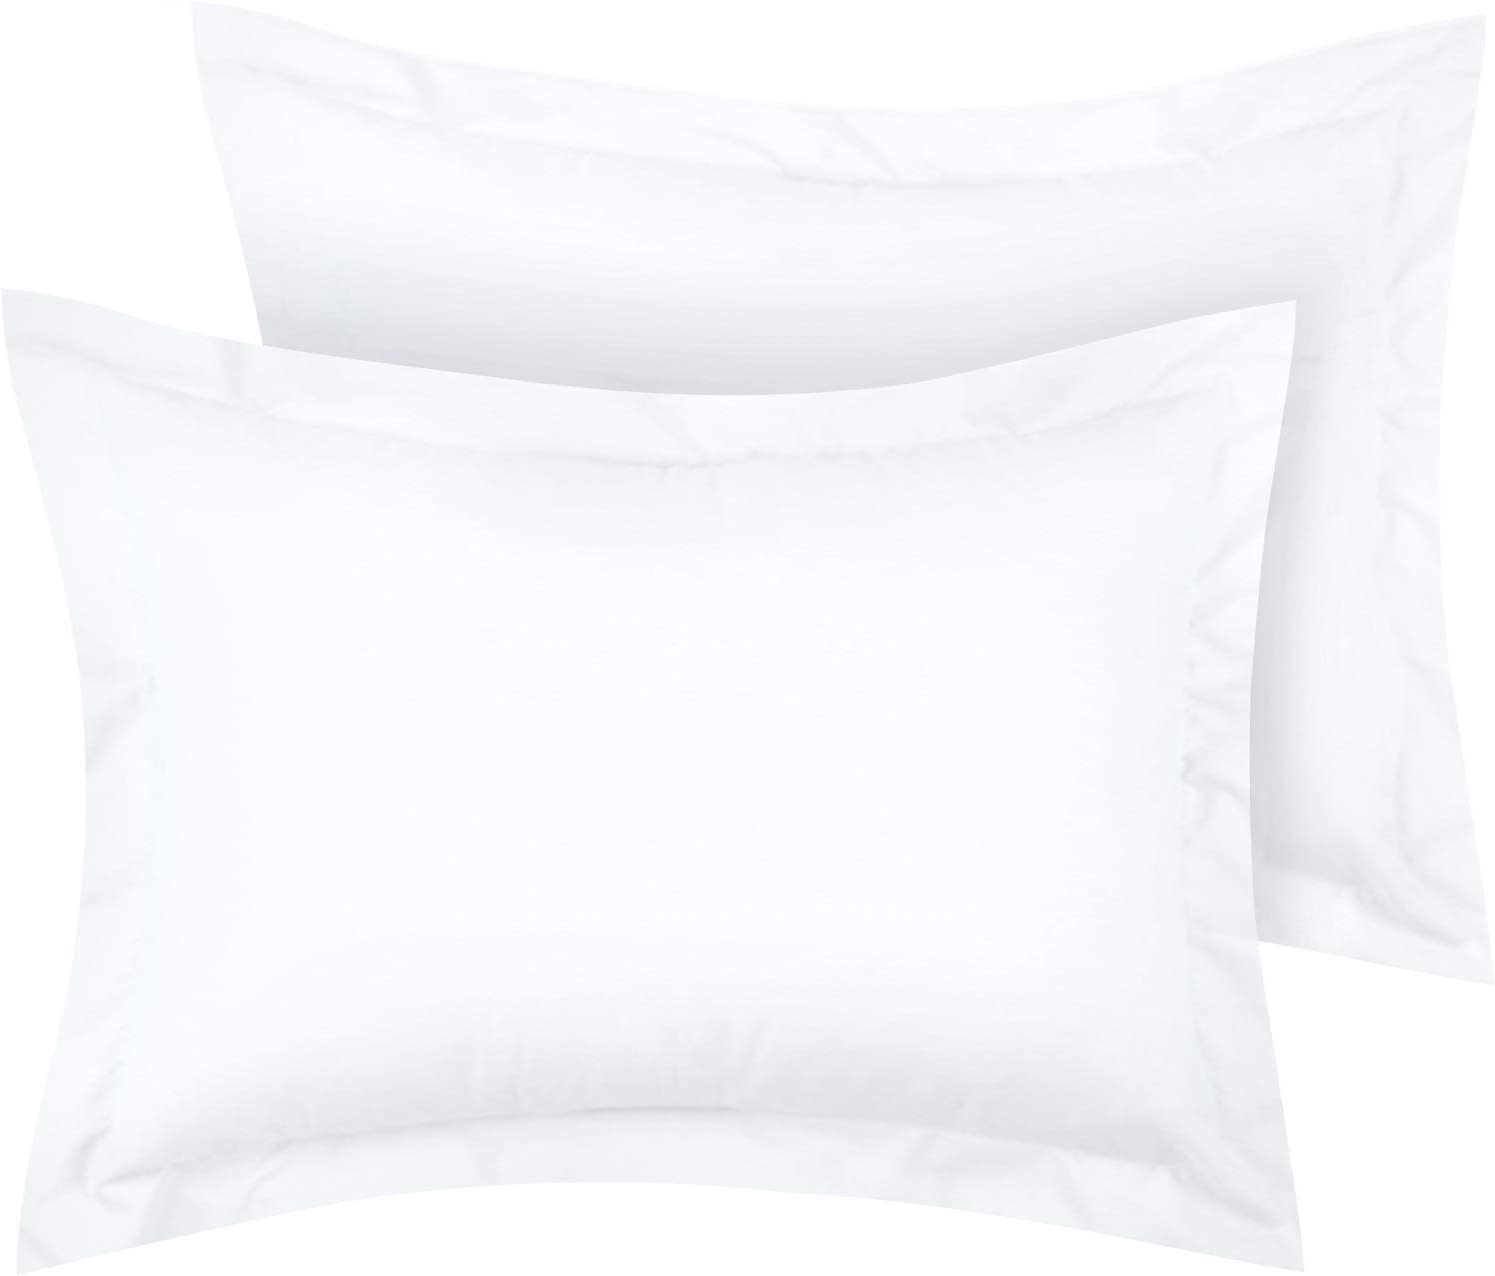 Mellanni Pillow Shams Set of 2 Standard Size - Soft Double Brushed Microfiber Decorative Pillow Covers/Cases 20